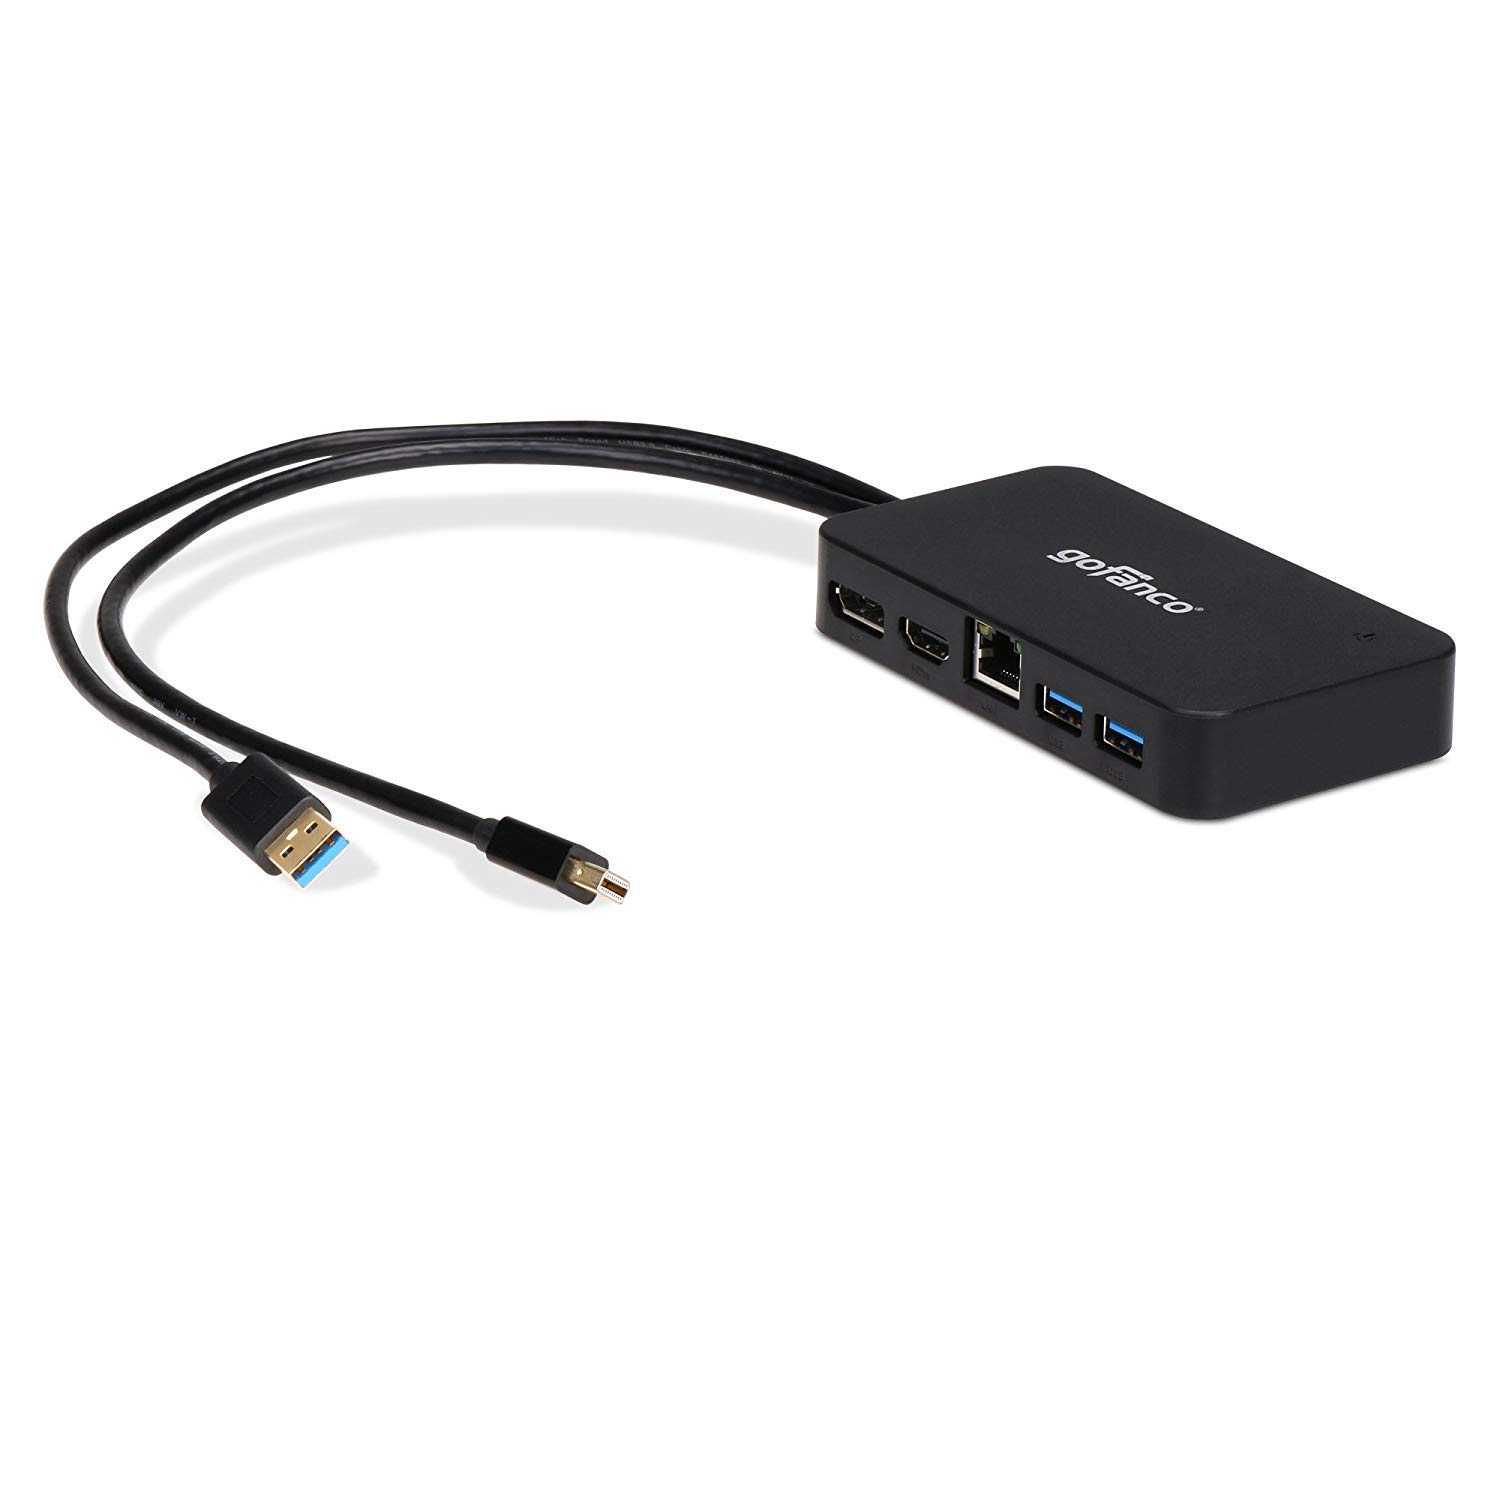 gofanco Mini DisplayPort(Thunderbolt 2) Video Dock/Docking Station with HDMI or DisplayPort, USB 3.0 and Gigabit Ethernet for Surface Pro, MacBook and PC - Thunderbolt 2 to DP or HDMI Adapter Hub by gofanco